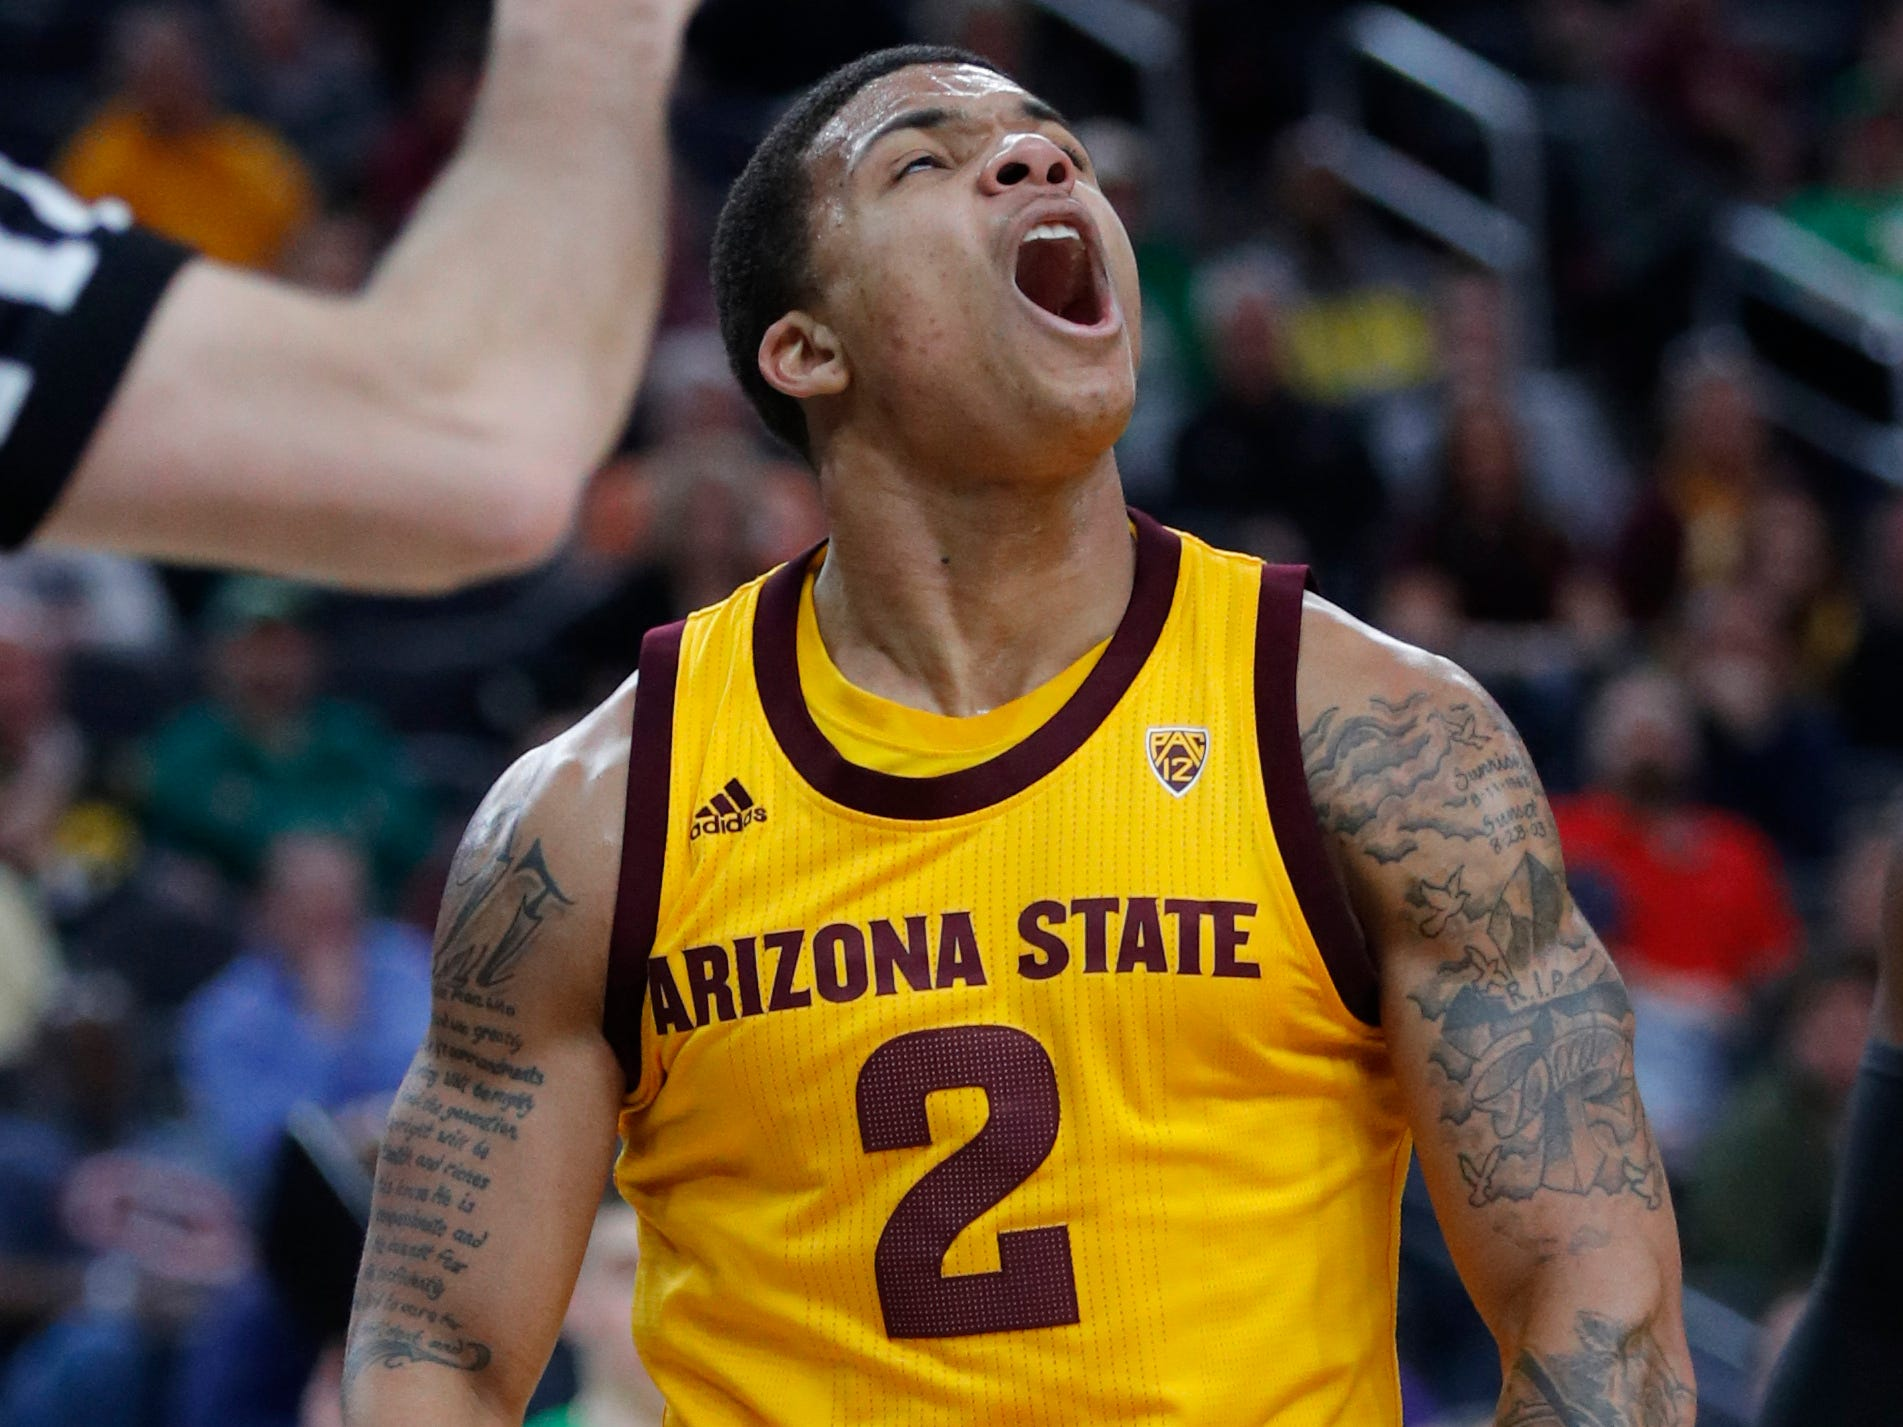 In addition to Michigan State and Michigan, these players in the NCAA Tournament also have ties to the state  of Michigan, including Arizona State guard Rob Edwards, a Detroit Cass Tech product.